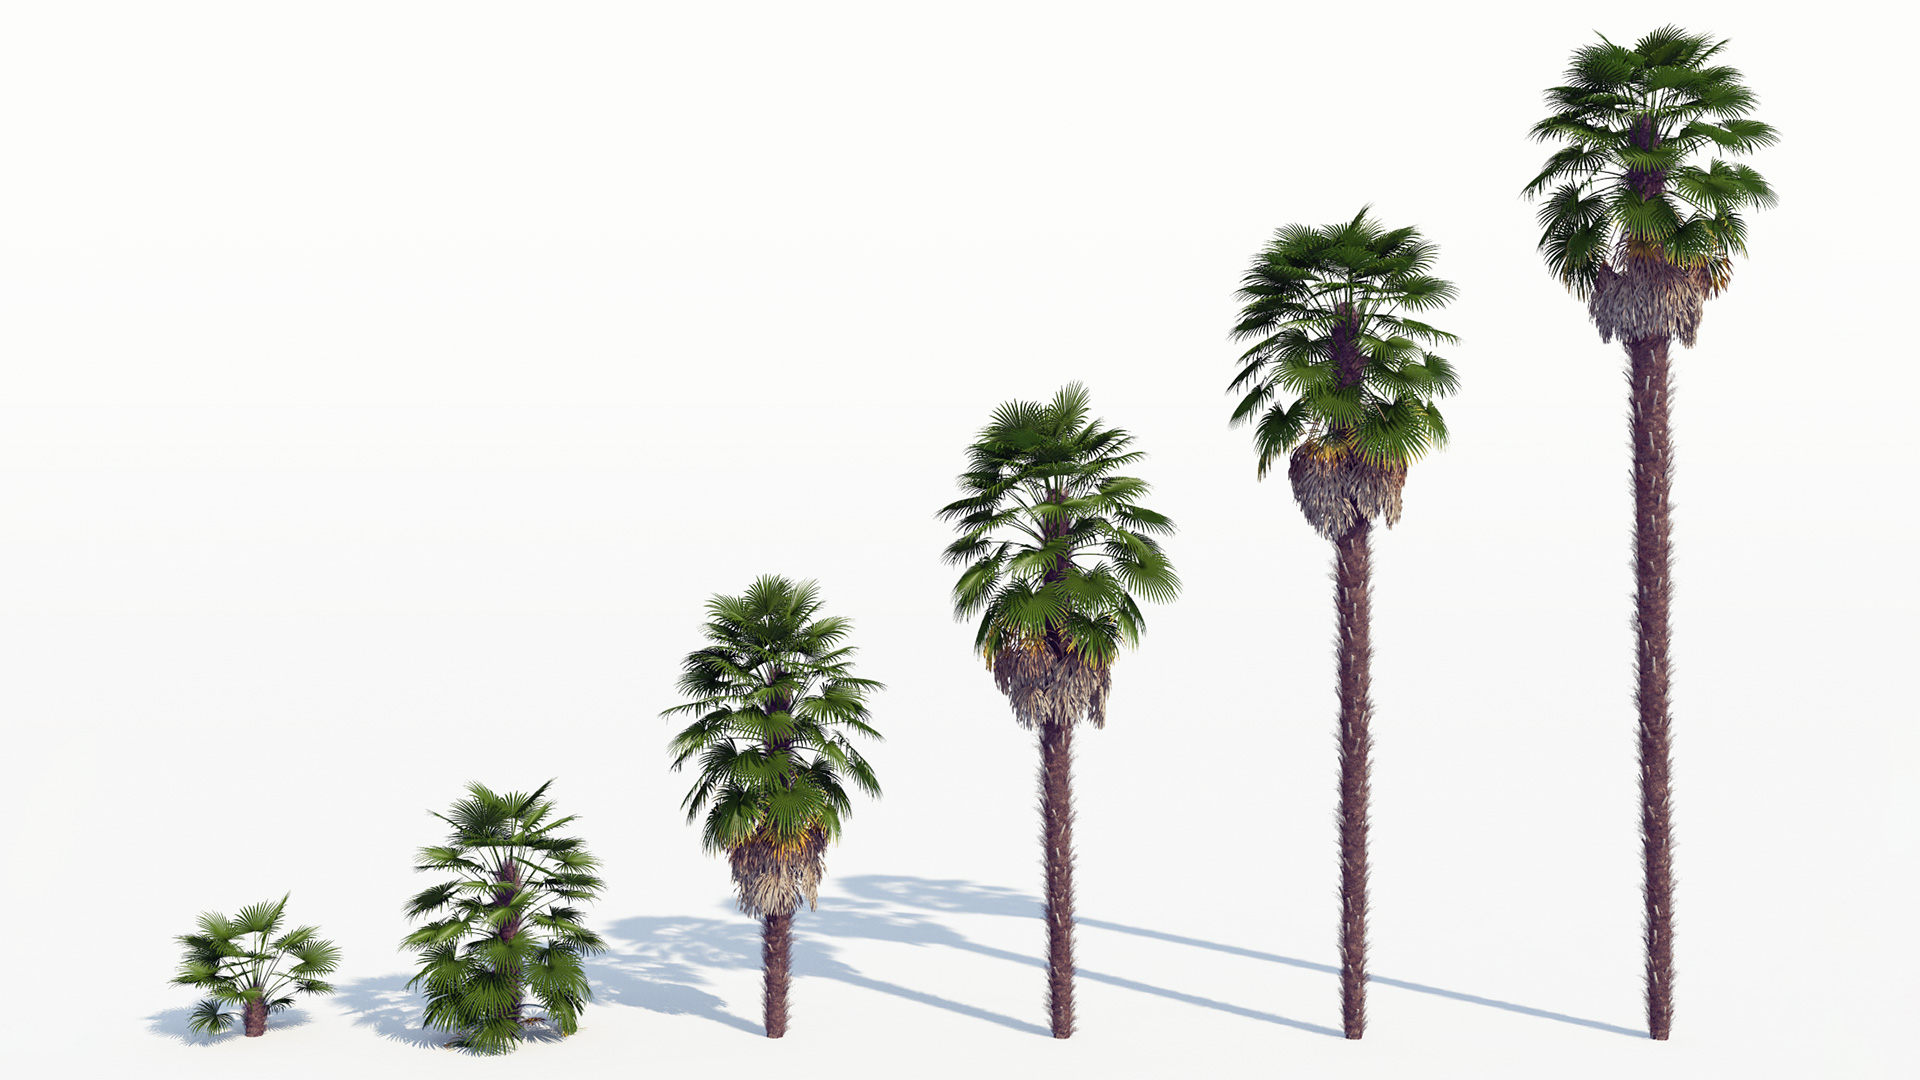 3D model of the Windmill palm Trachycarpus fortunei maturity variations